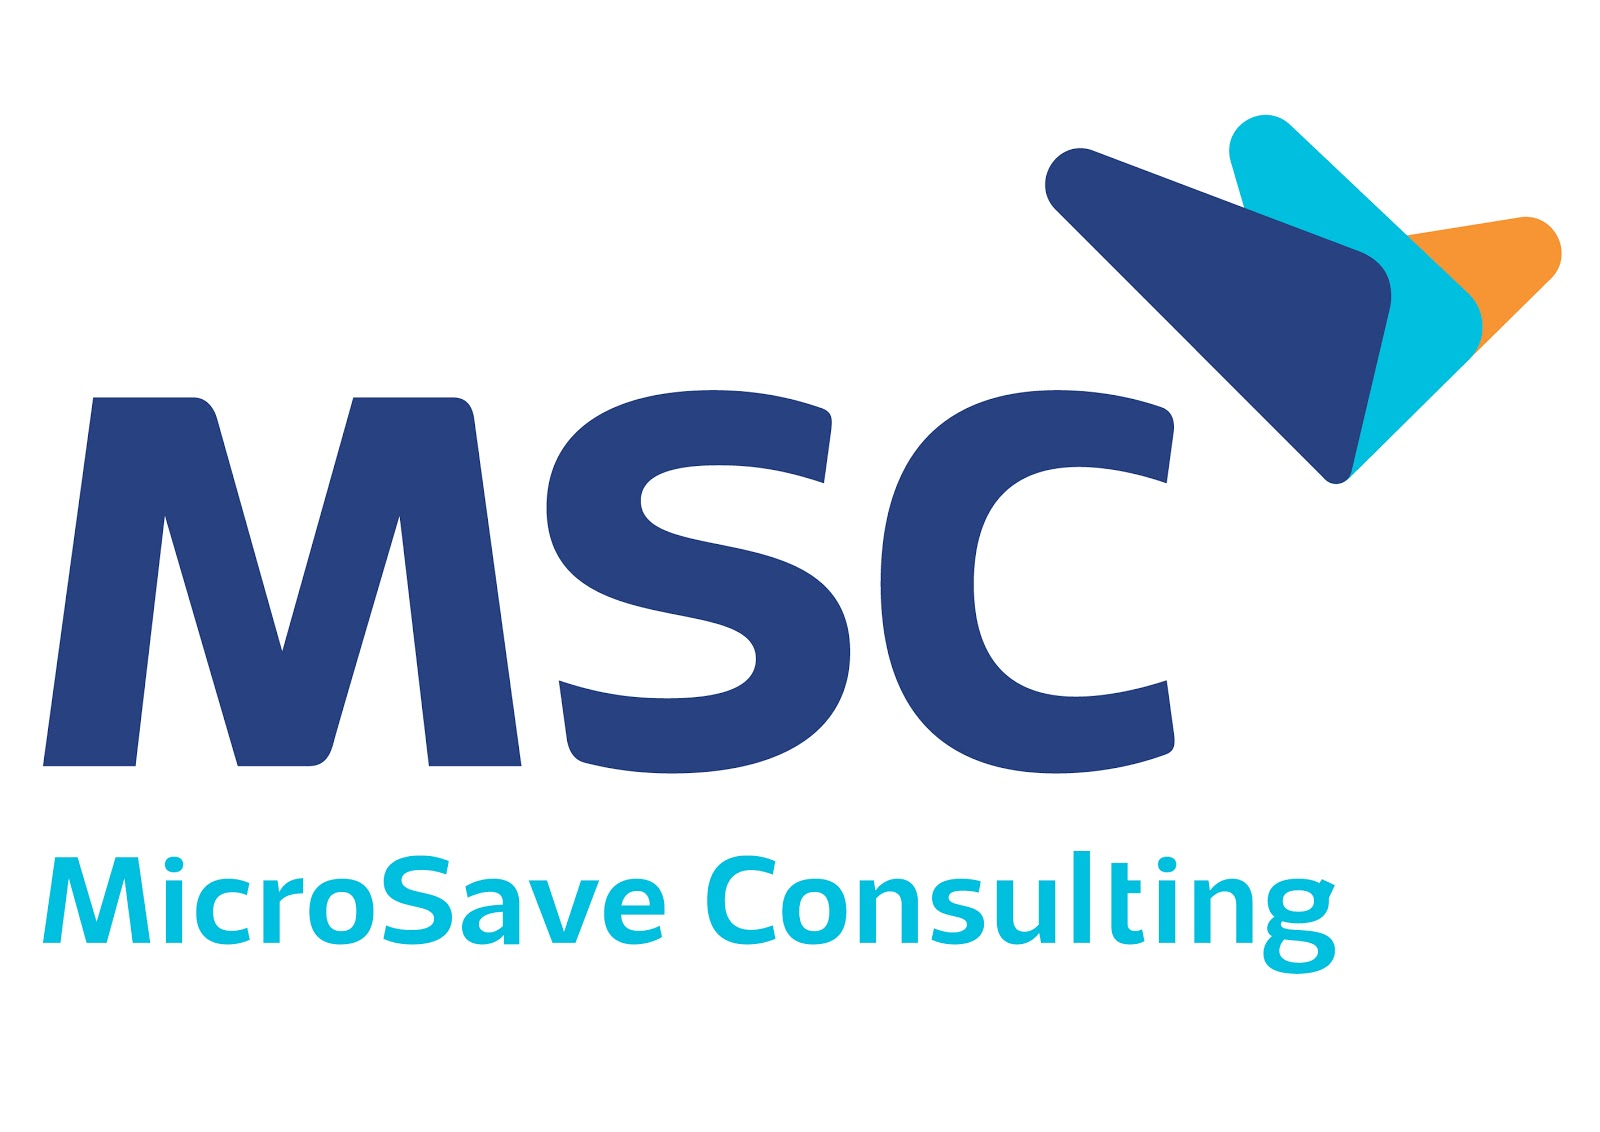 MicroSave Consulting